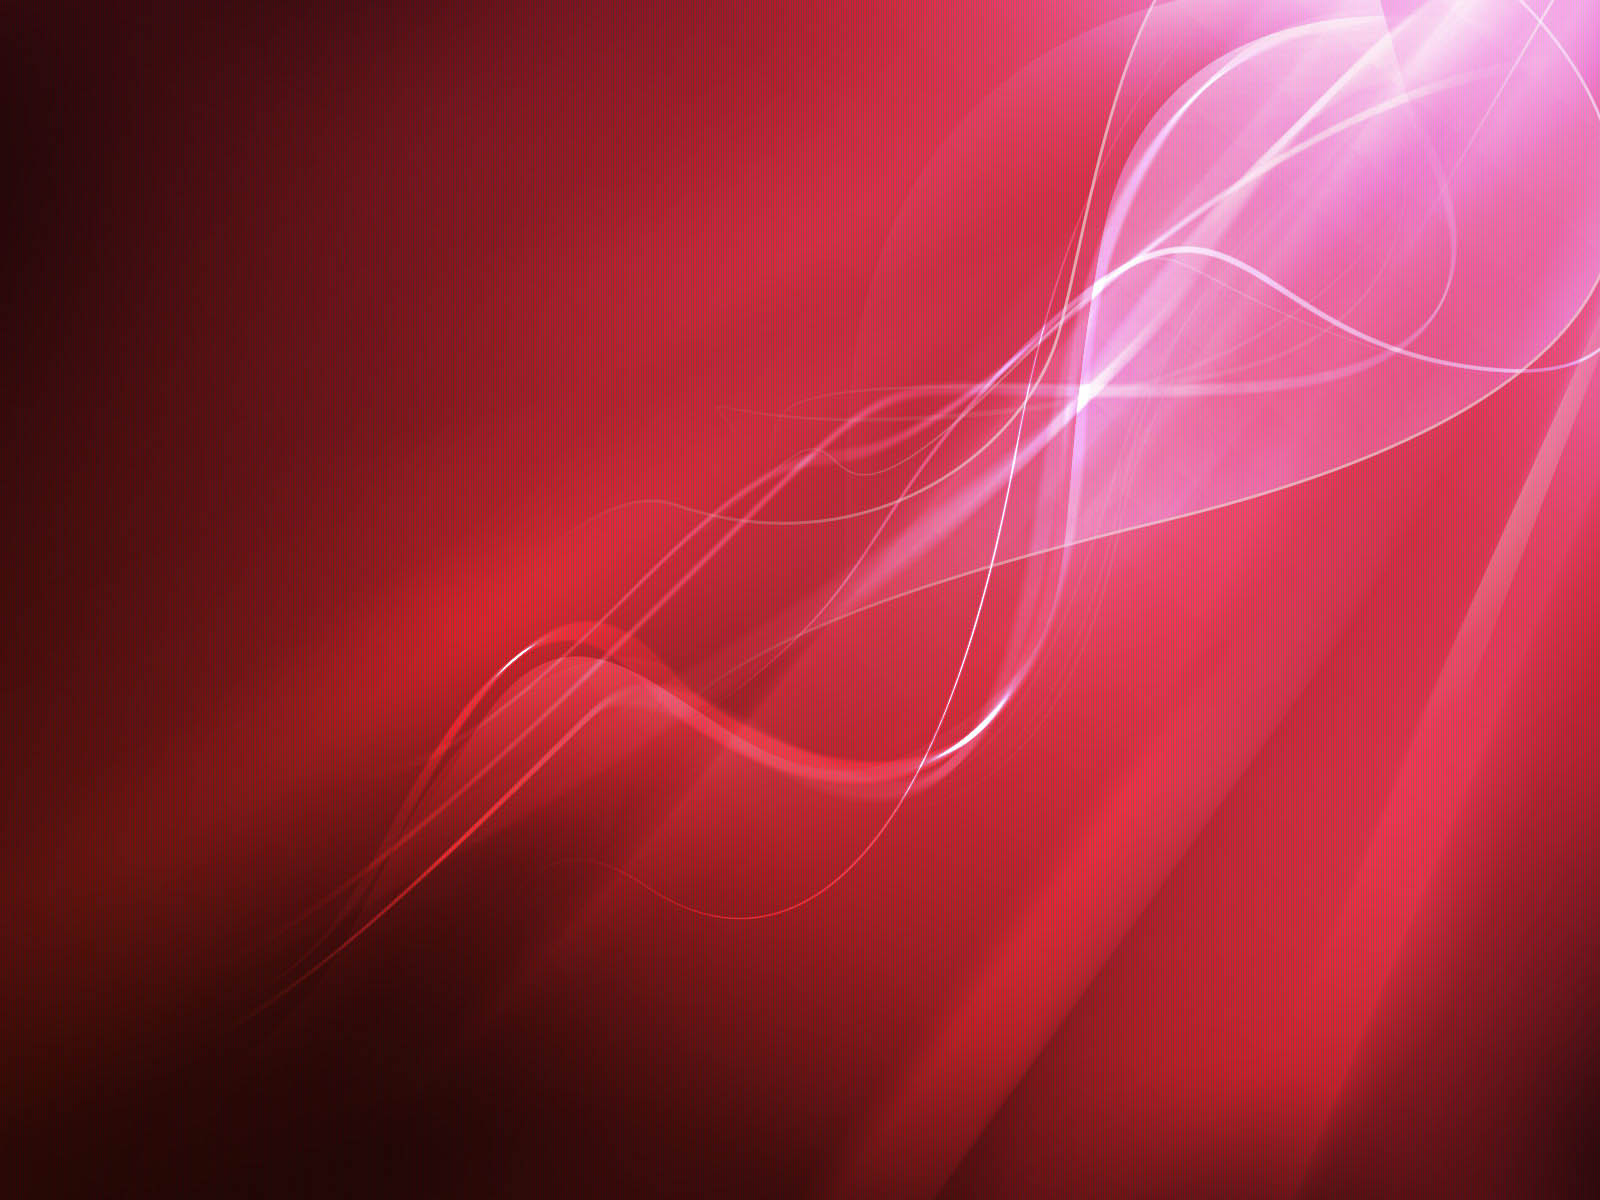 Wallpapers Abstract Red Wallpapers HD Wallpapers Download Free Images Wallpaper [1000image.com]